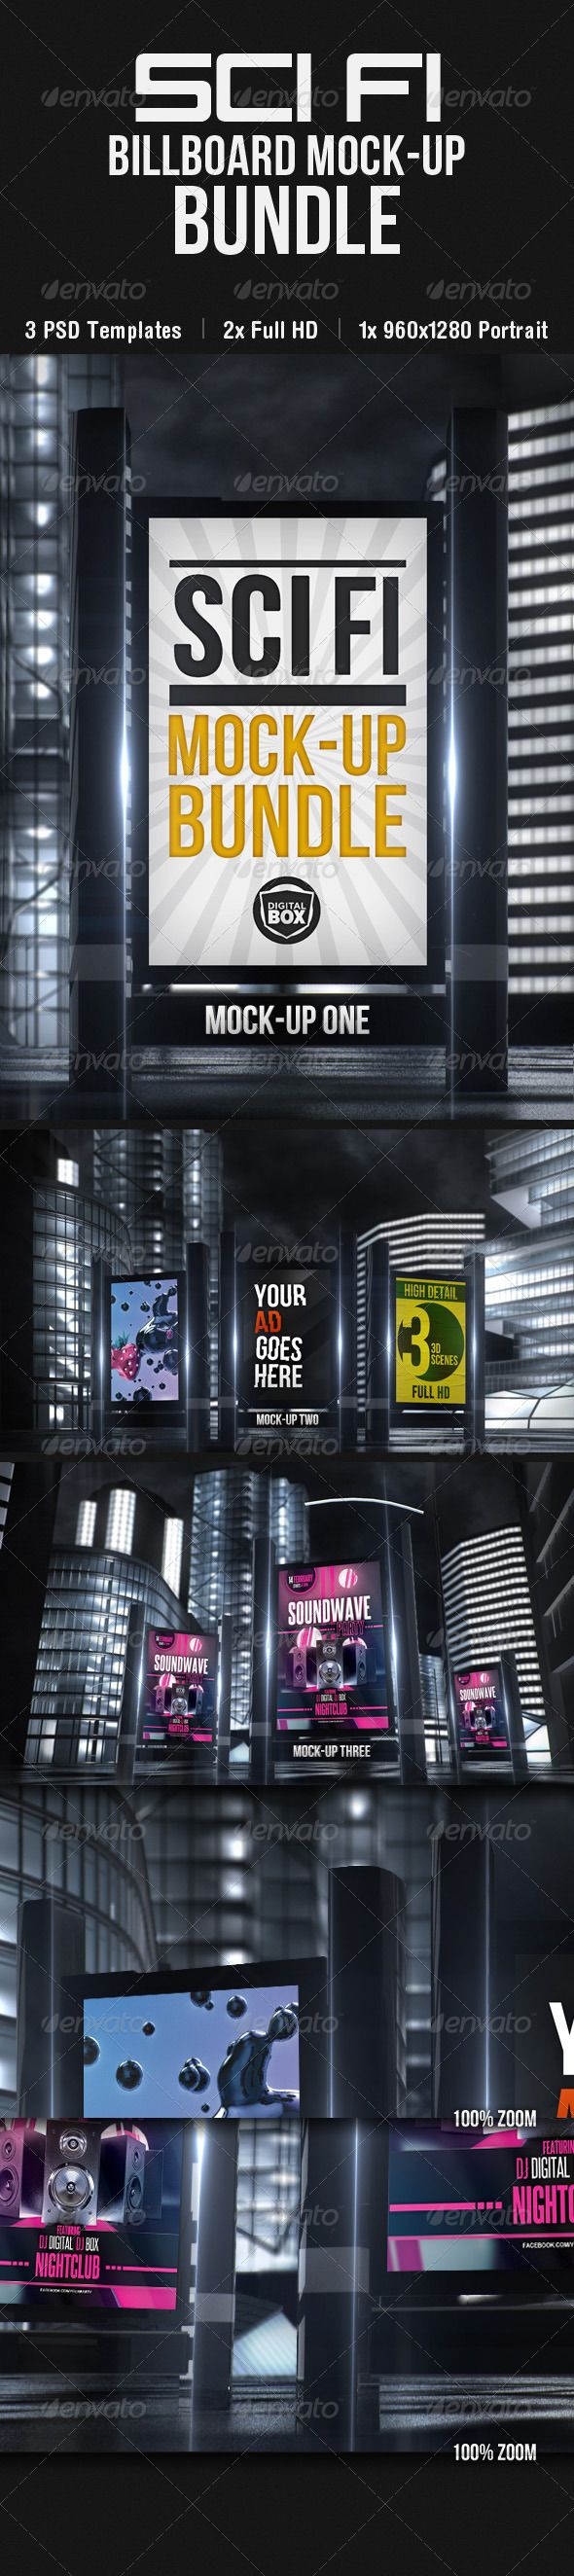 Scifi Billboard Mockup Bundle Billboard mockup, Mockup